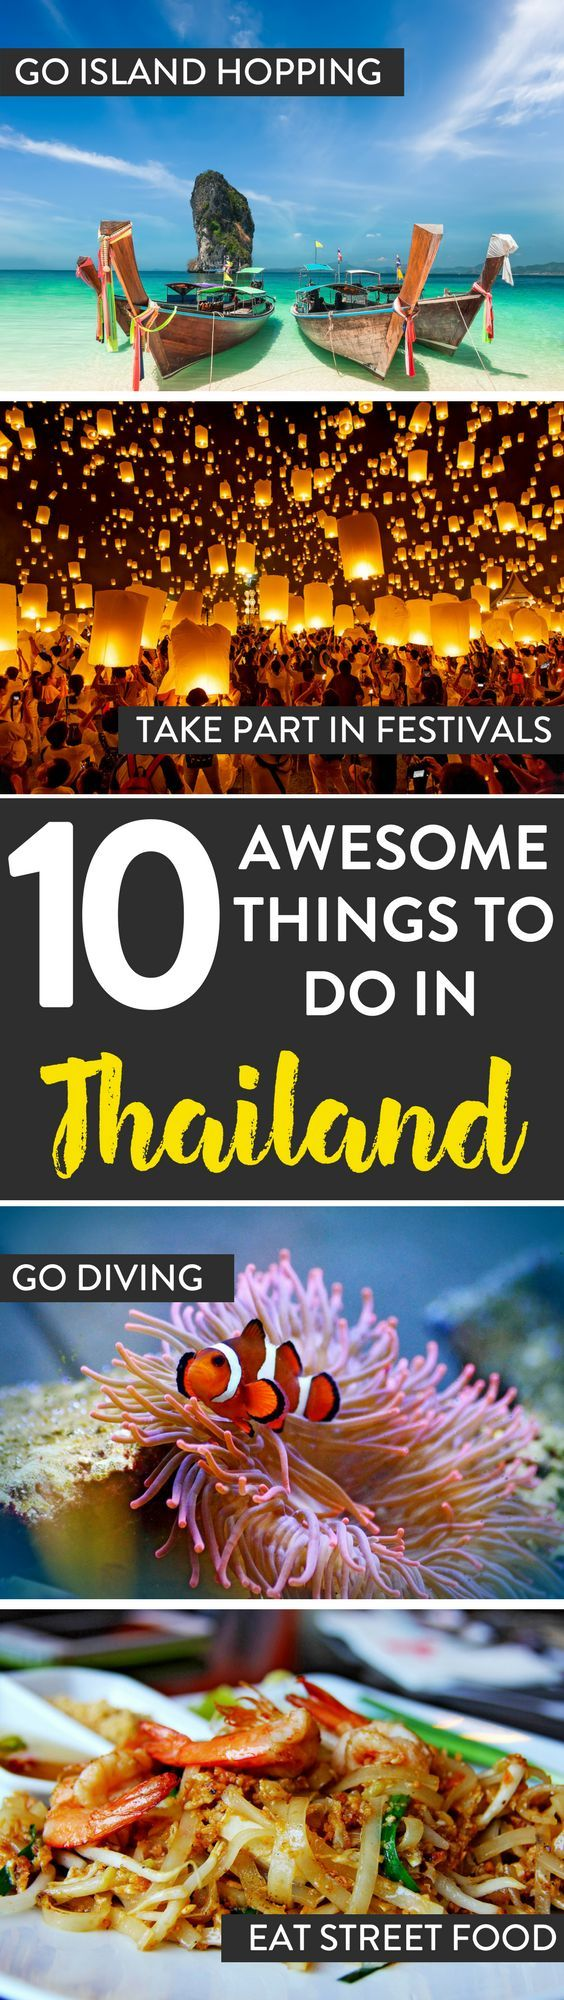 Thailand Travel | Looking for awesome things to do while in Thailand? Here are 10 of our recommendations on what to see and do.